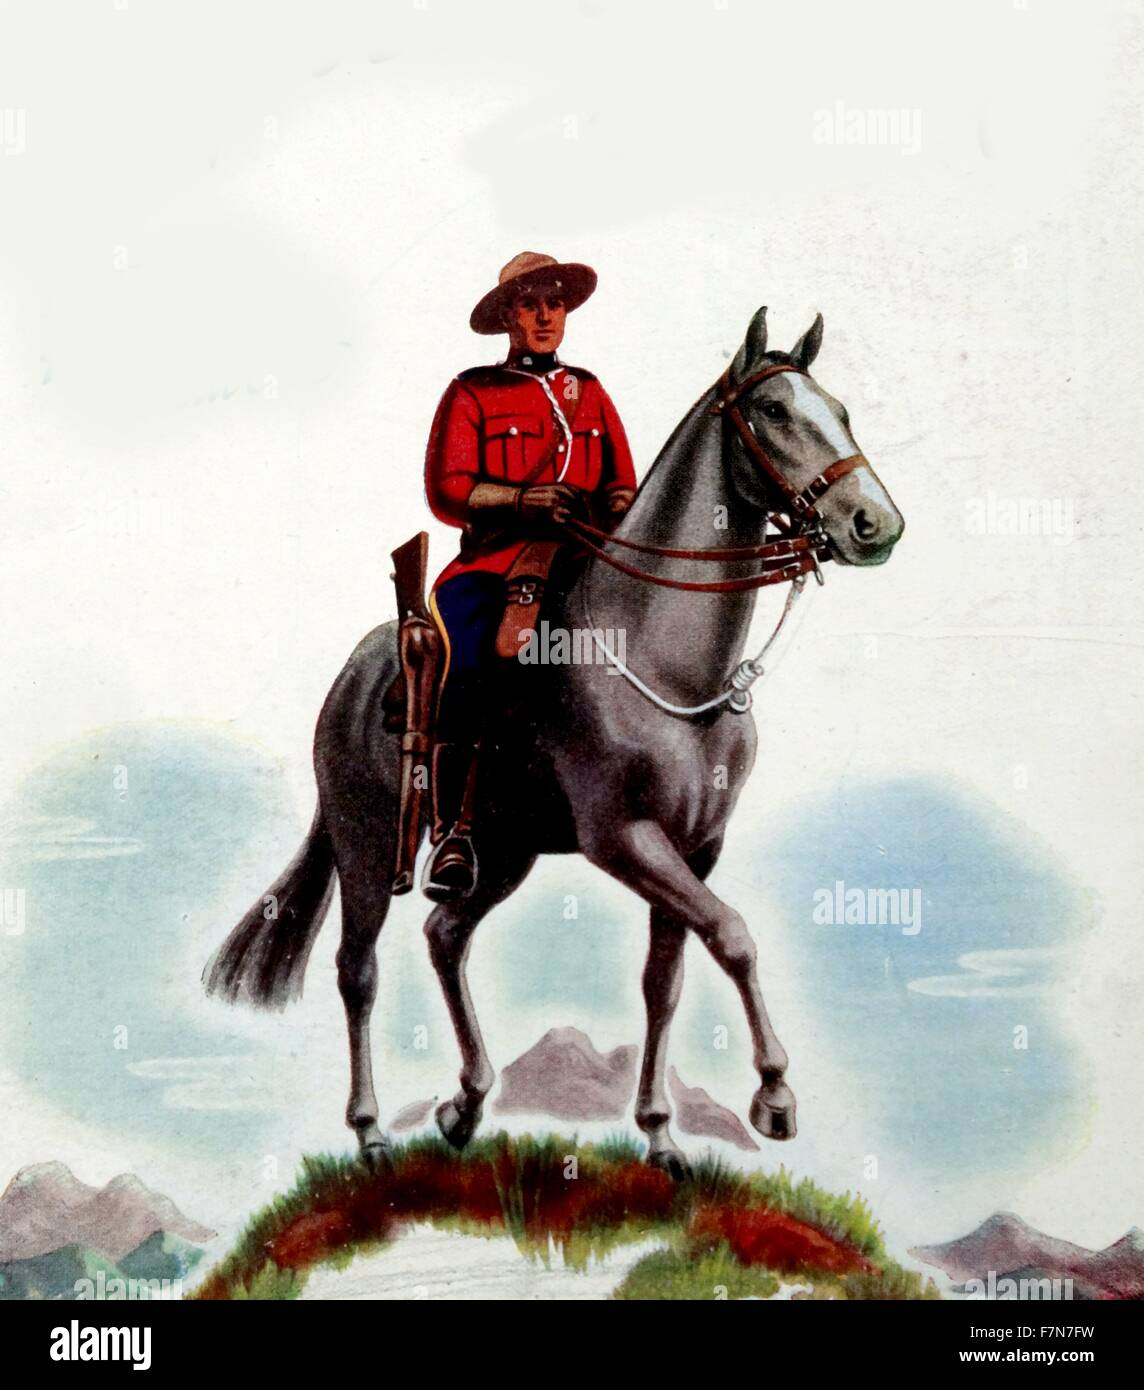 Mountie or mounted canadian police officer - Stock Image